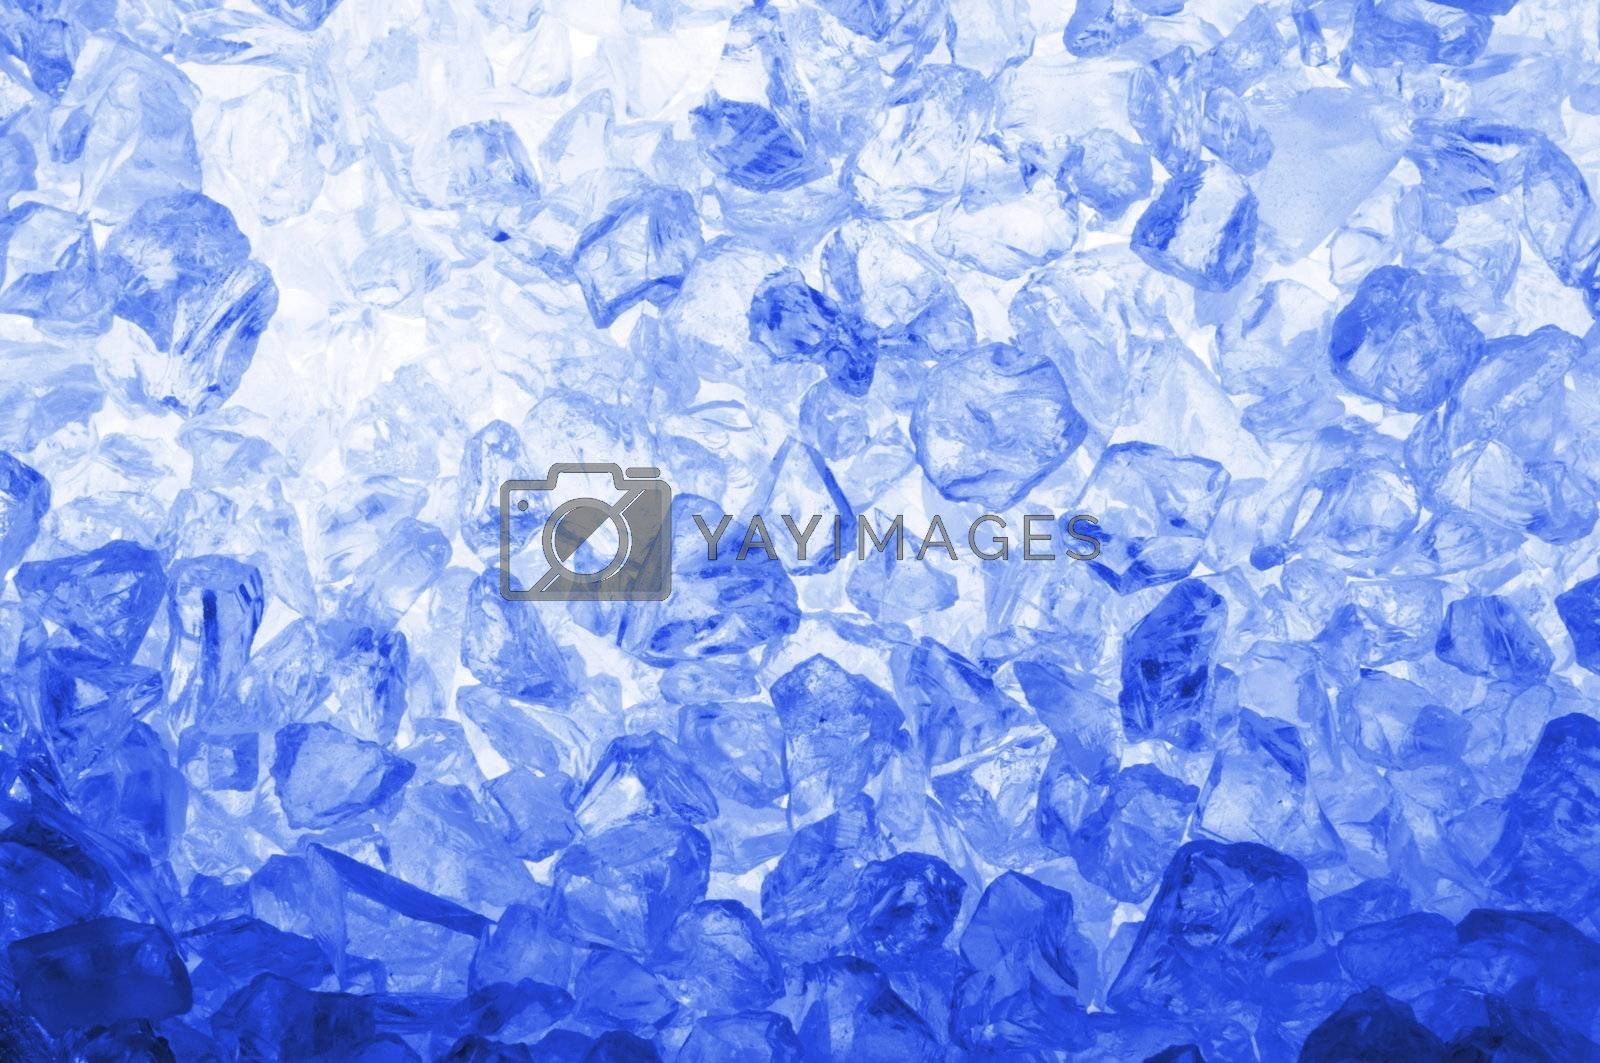 cool ice background or texture in blue with copyspace